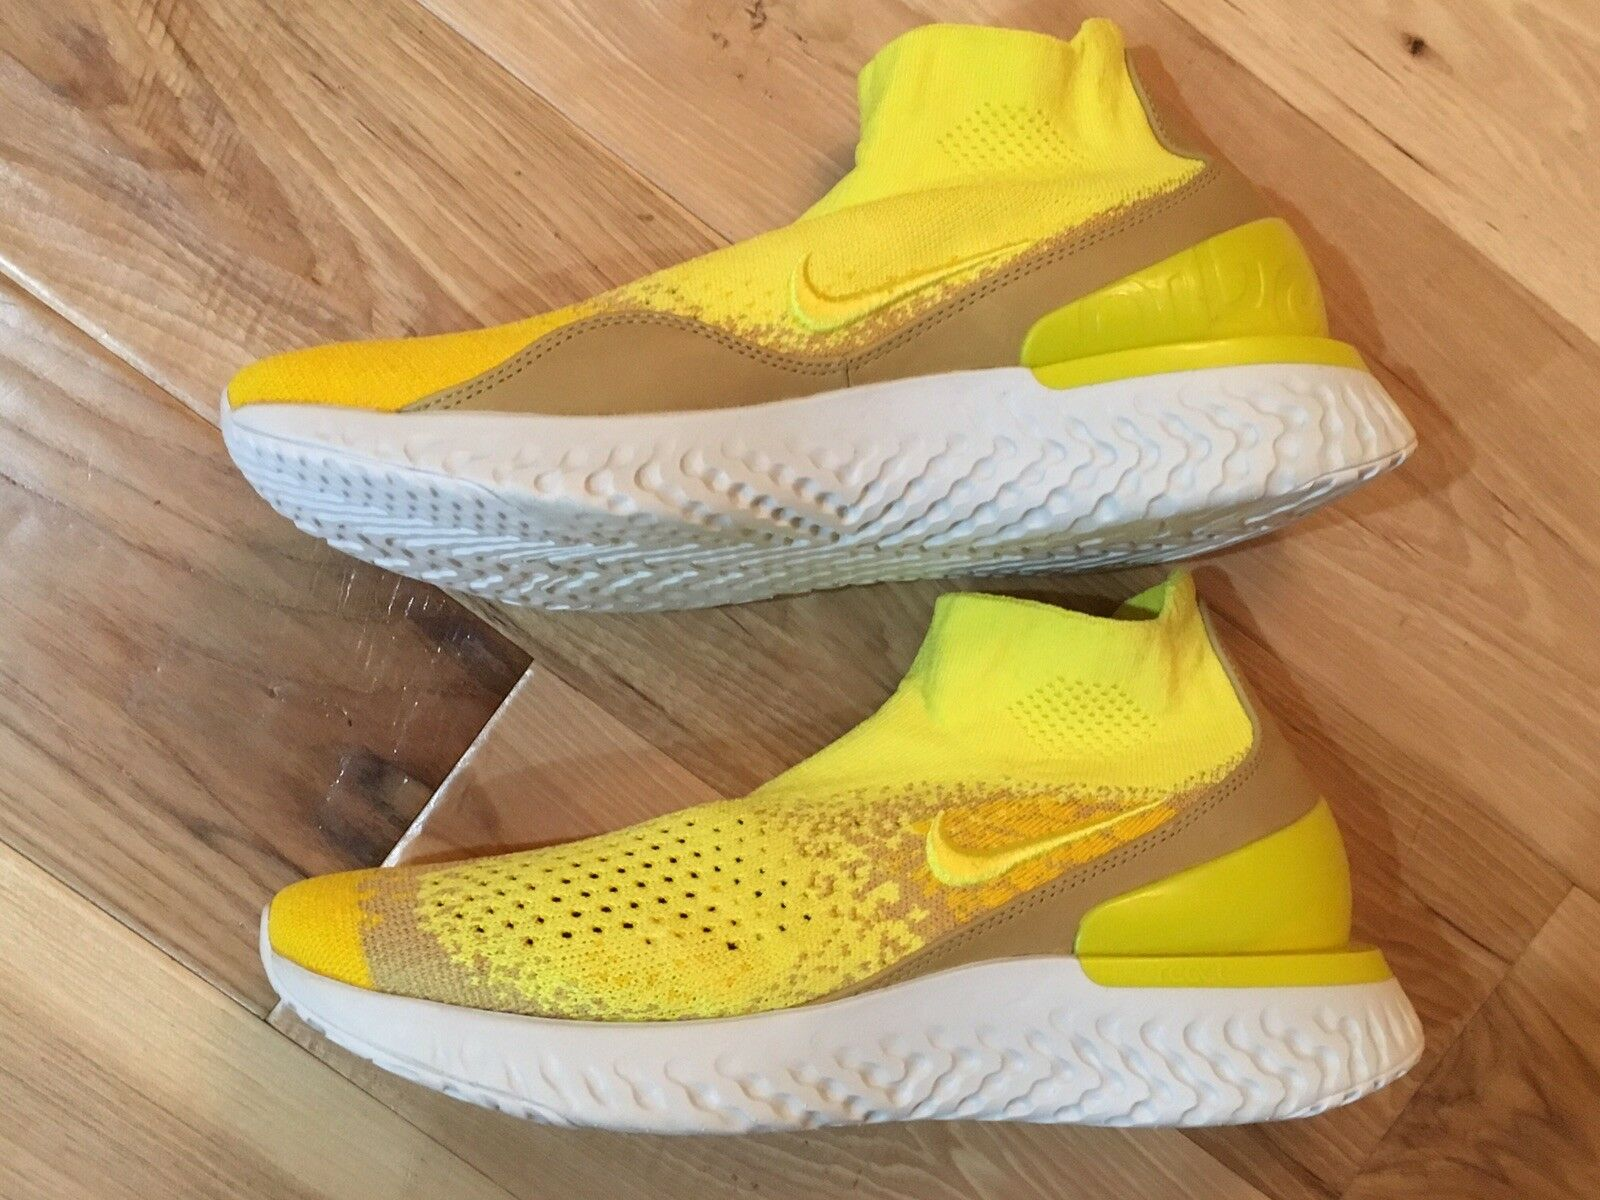 Nike Rise React Flyknit Limited Edition Running shoes - Yellow 9 Training